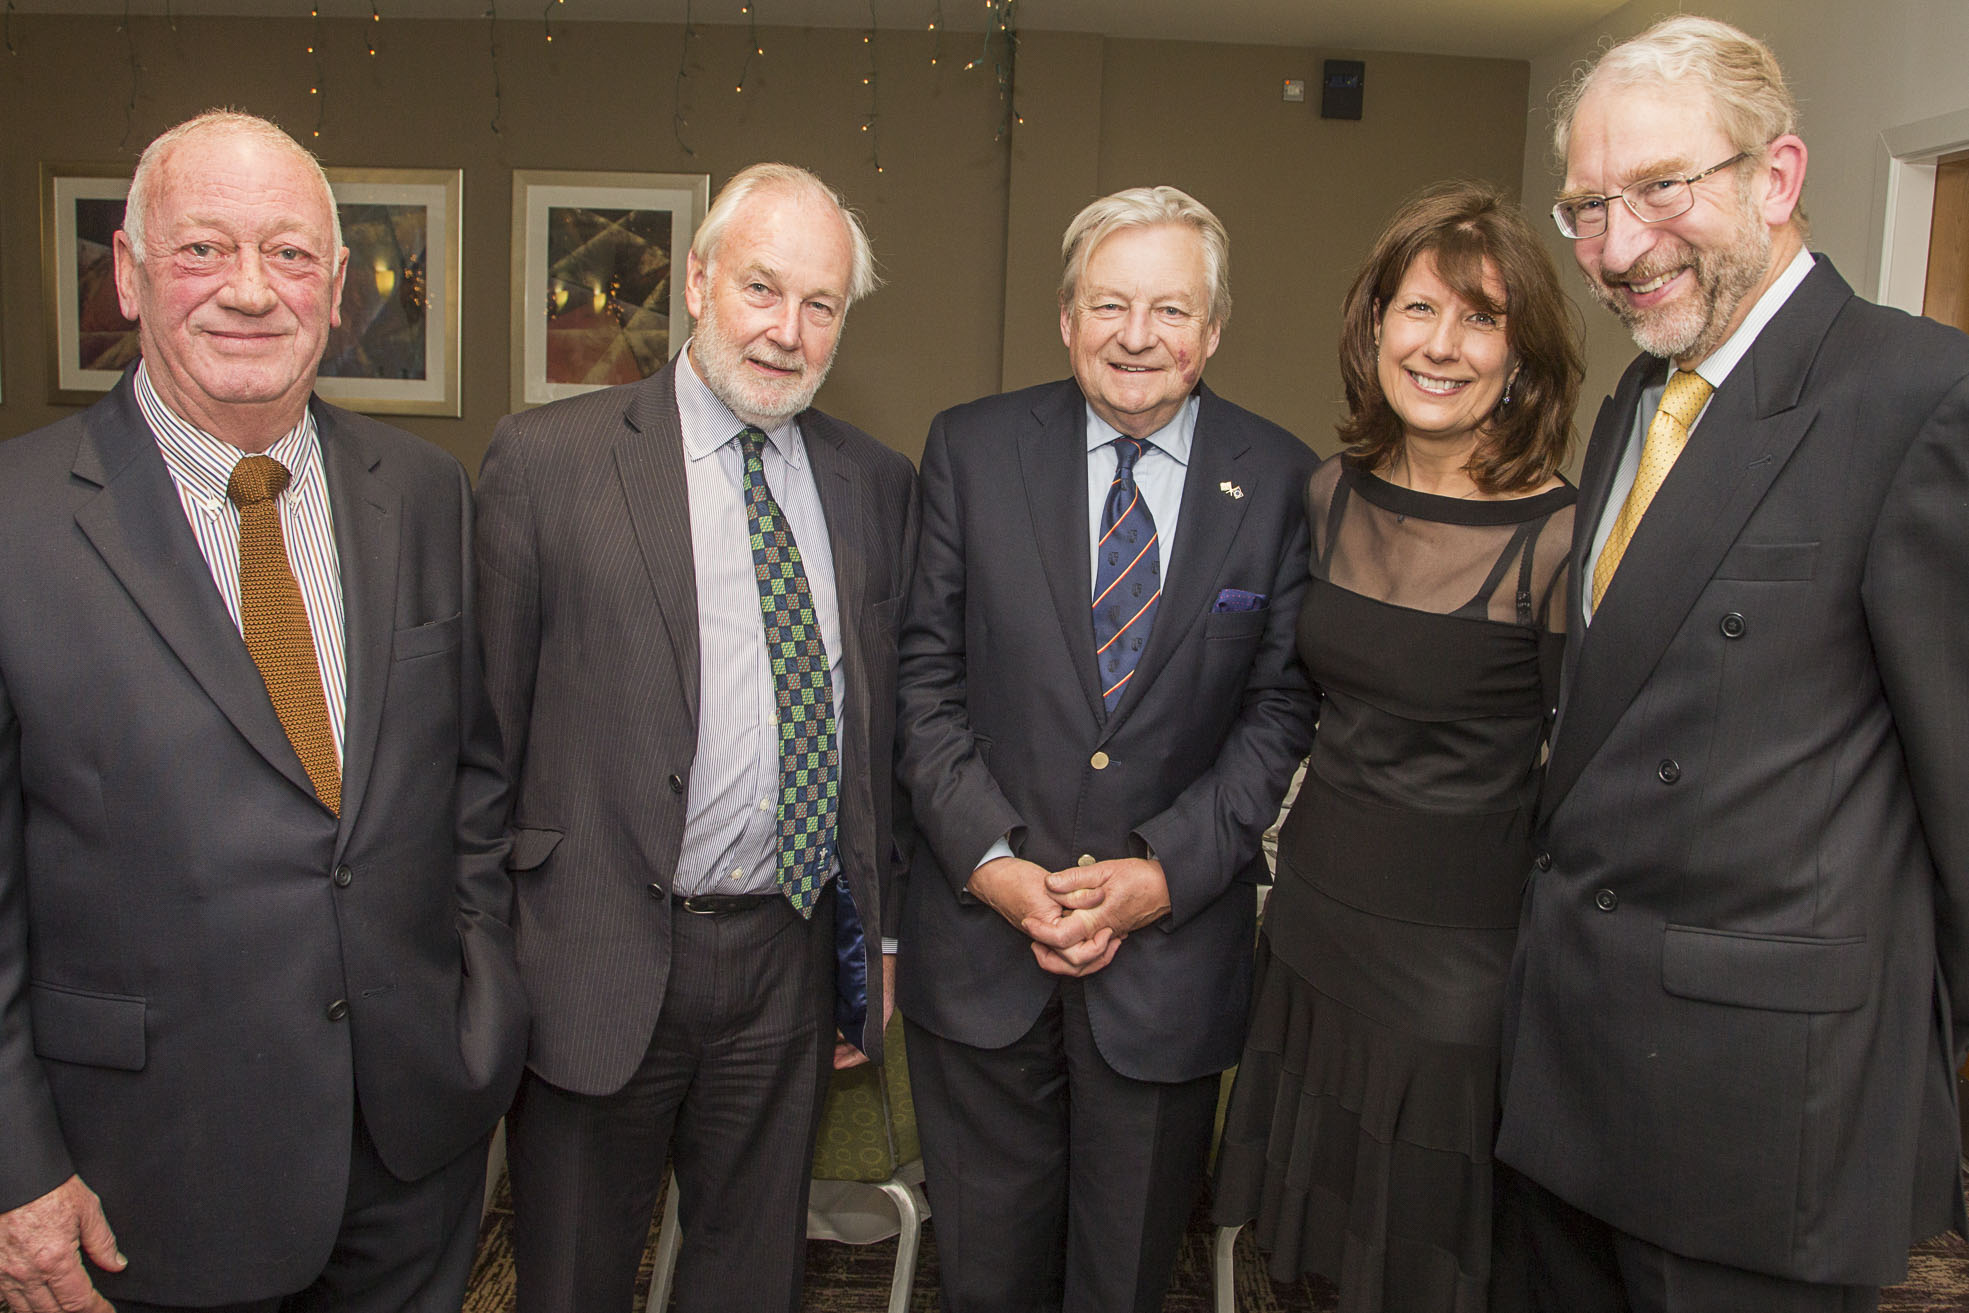 Wrexham Business Professionals evening with Lord Dafydd Ellis-Thomas at the Ramada, Wrexham. Guest speaker Lord Dafydd Elis Thomas, with Gill Atkinson, Peter Butler, right, Alan Jones, left and Robert Godfrey.